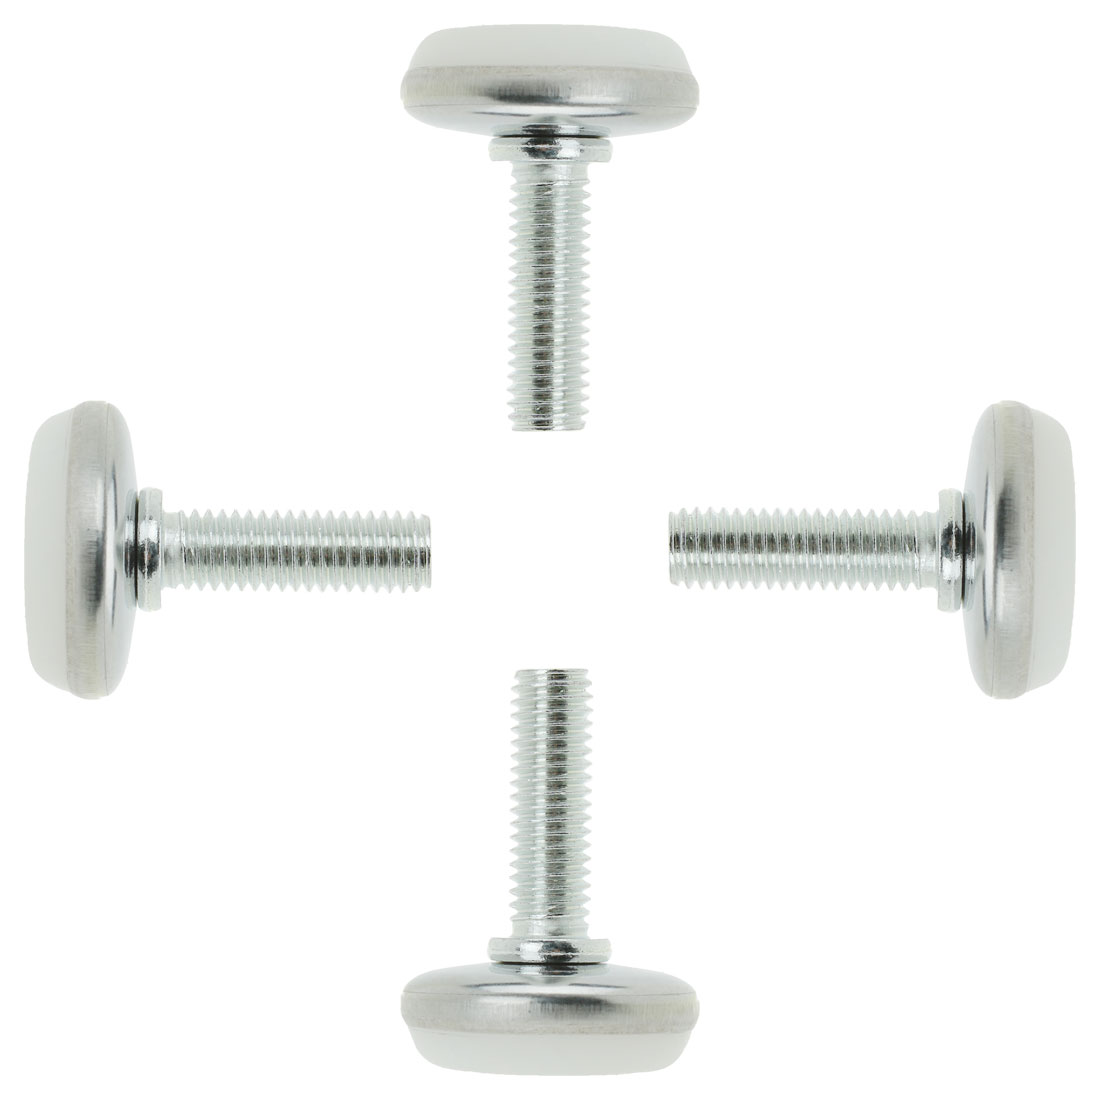 Screw On Type Furniture Glide Leveling Foot Adjuster 7.5mmx28mmx32mm 4 Pcs